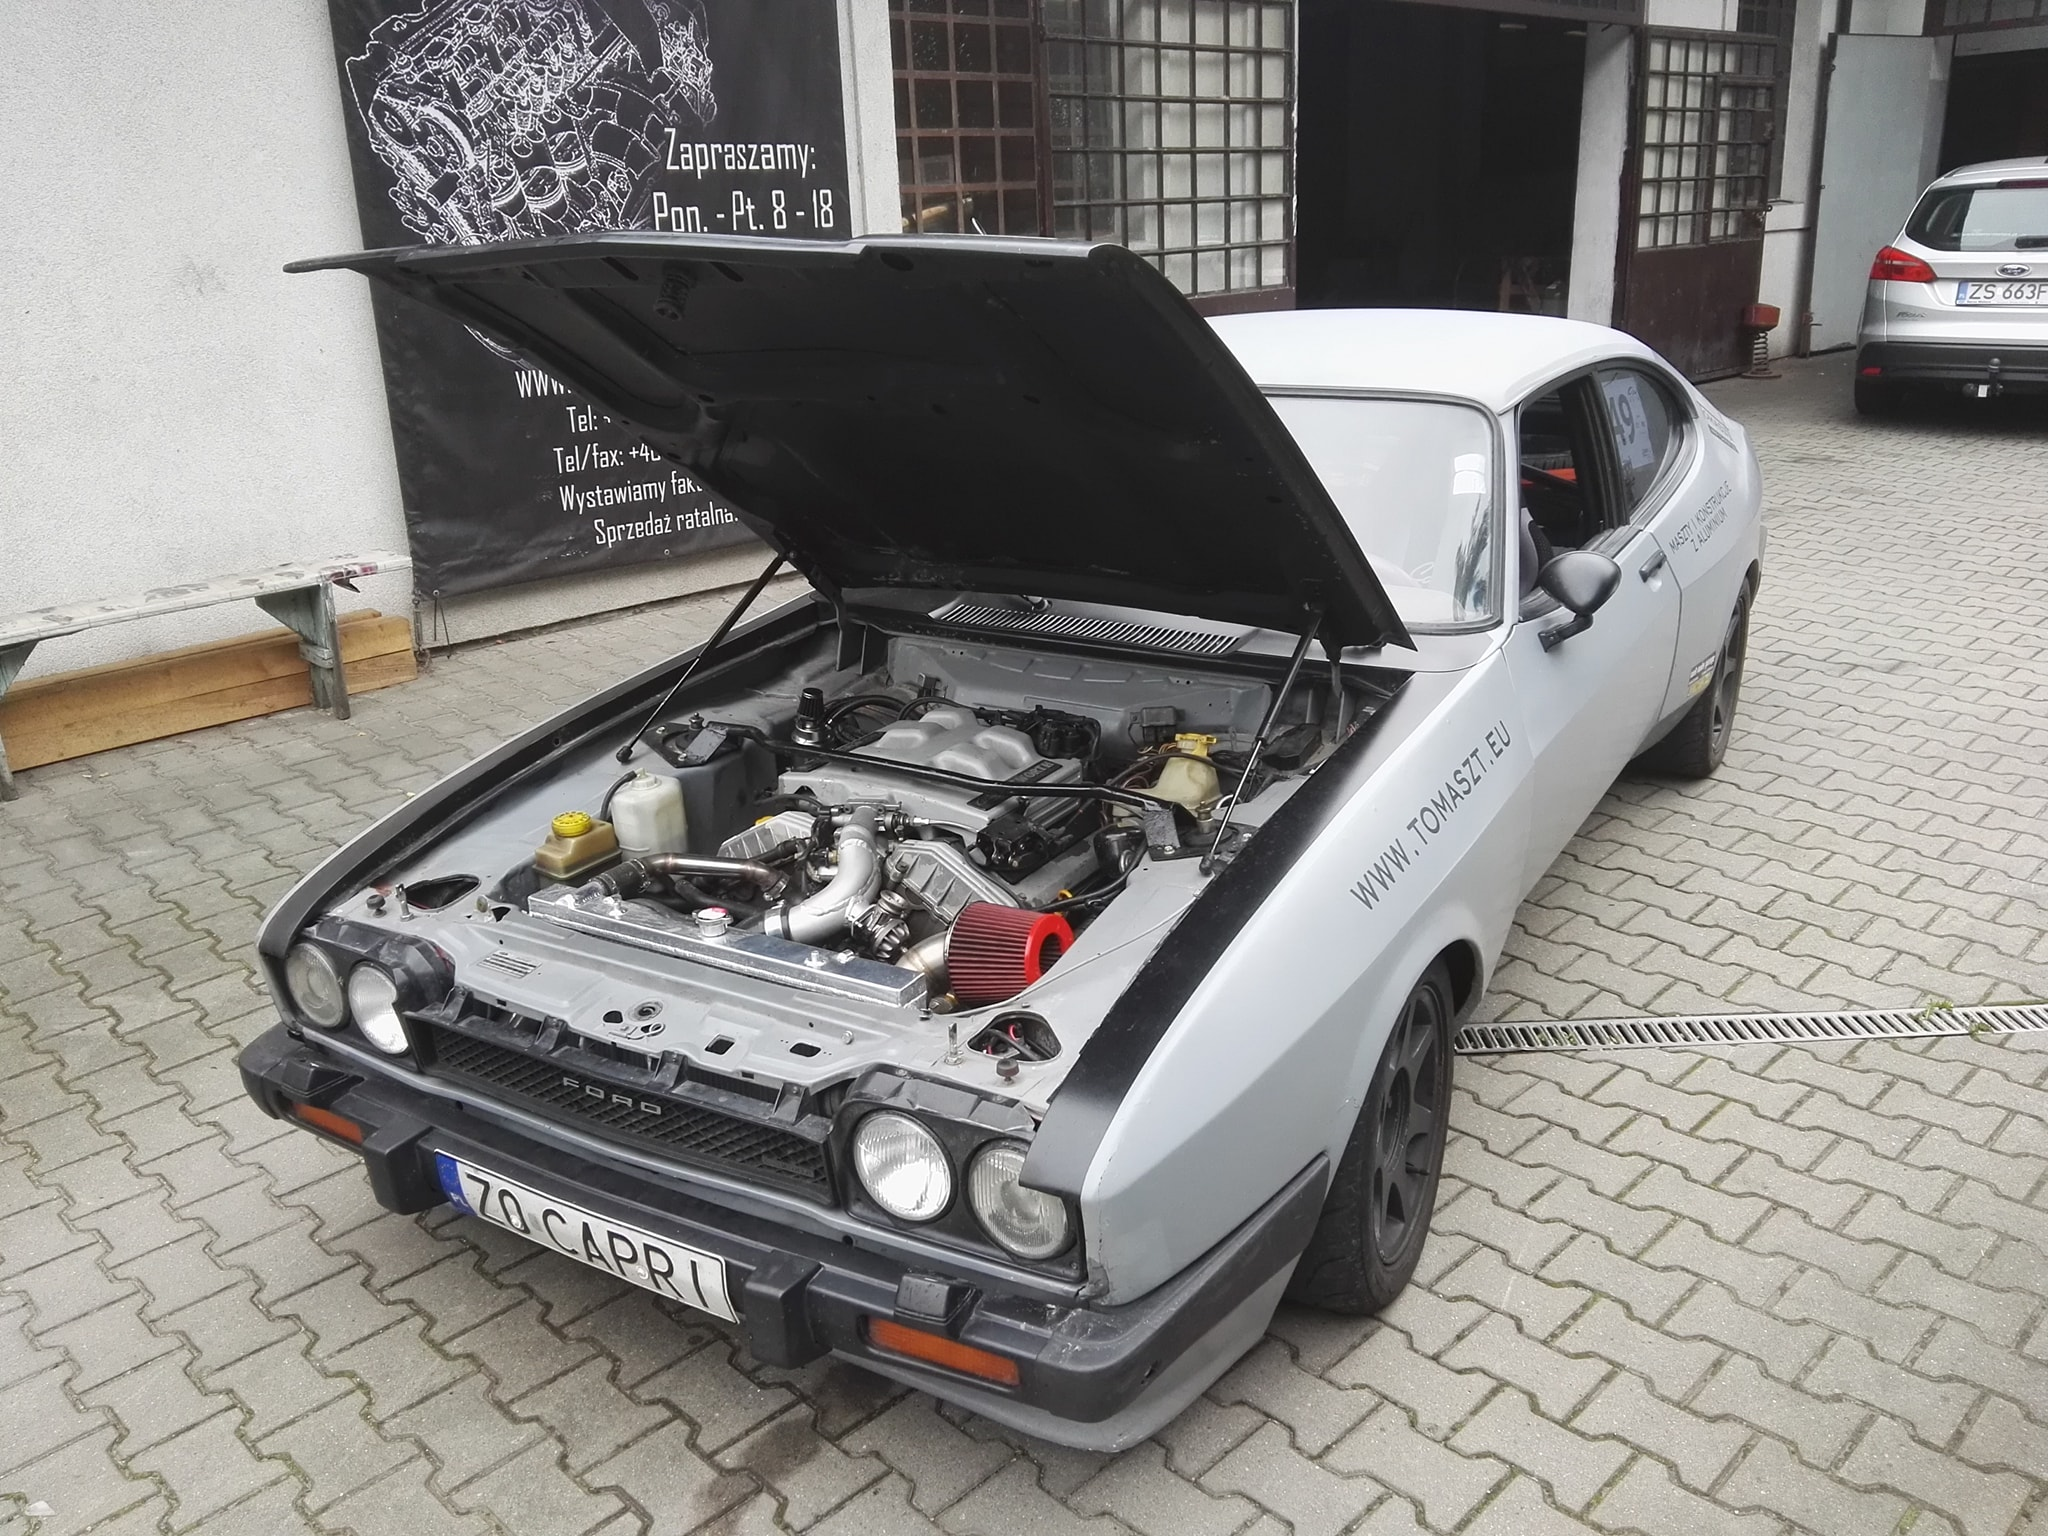 Ford Capri Mk3 With A Turbo Cosworth V6 Engine Swap Depot